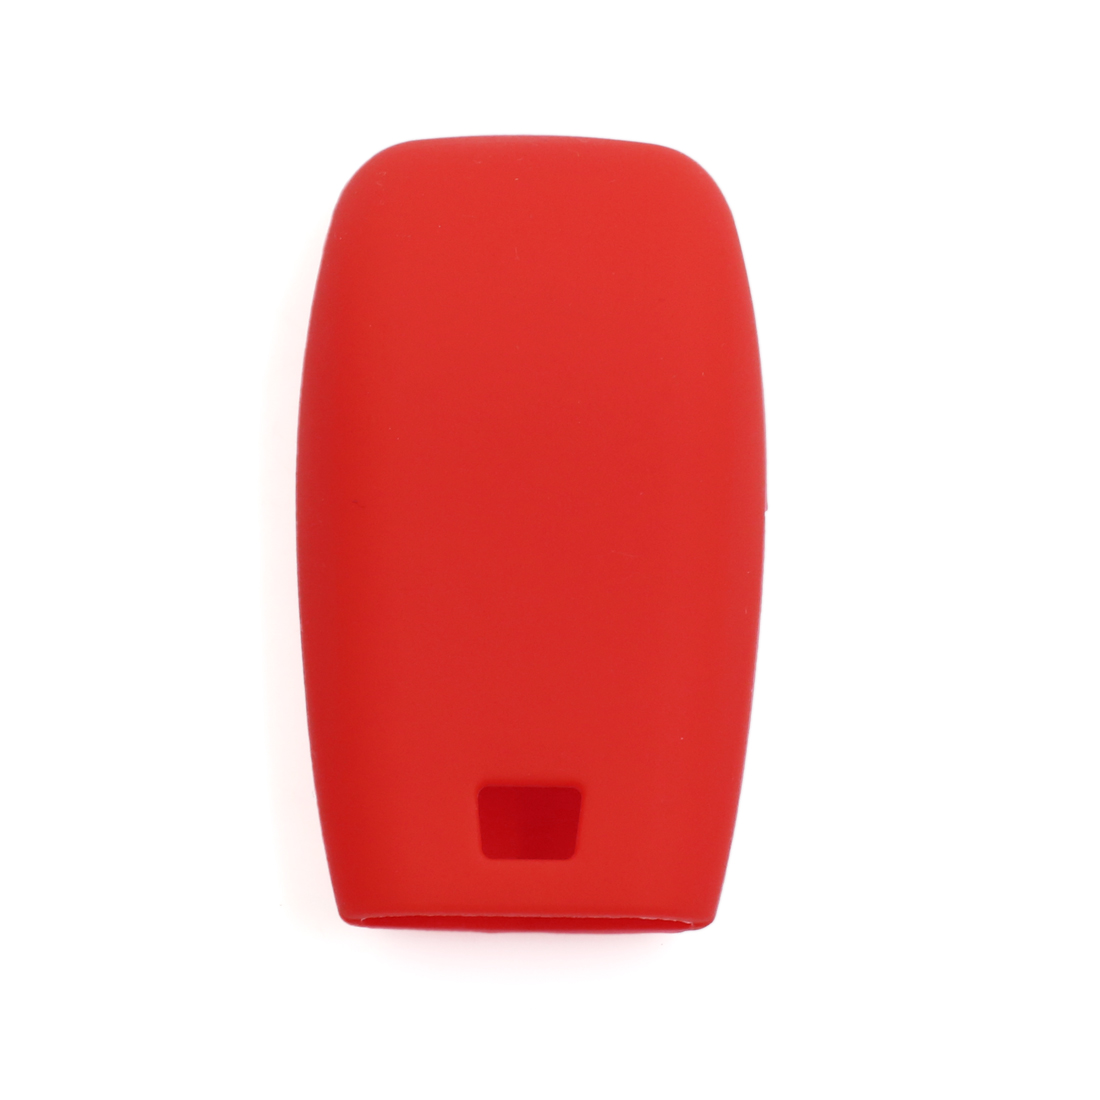 Red Silicone Keyless Entry Car Remote Key Fob Case Protective Cover for Benz - image 2 of 3